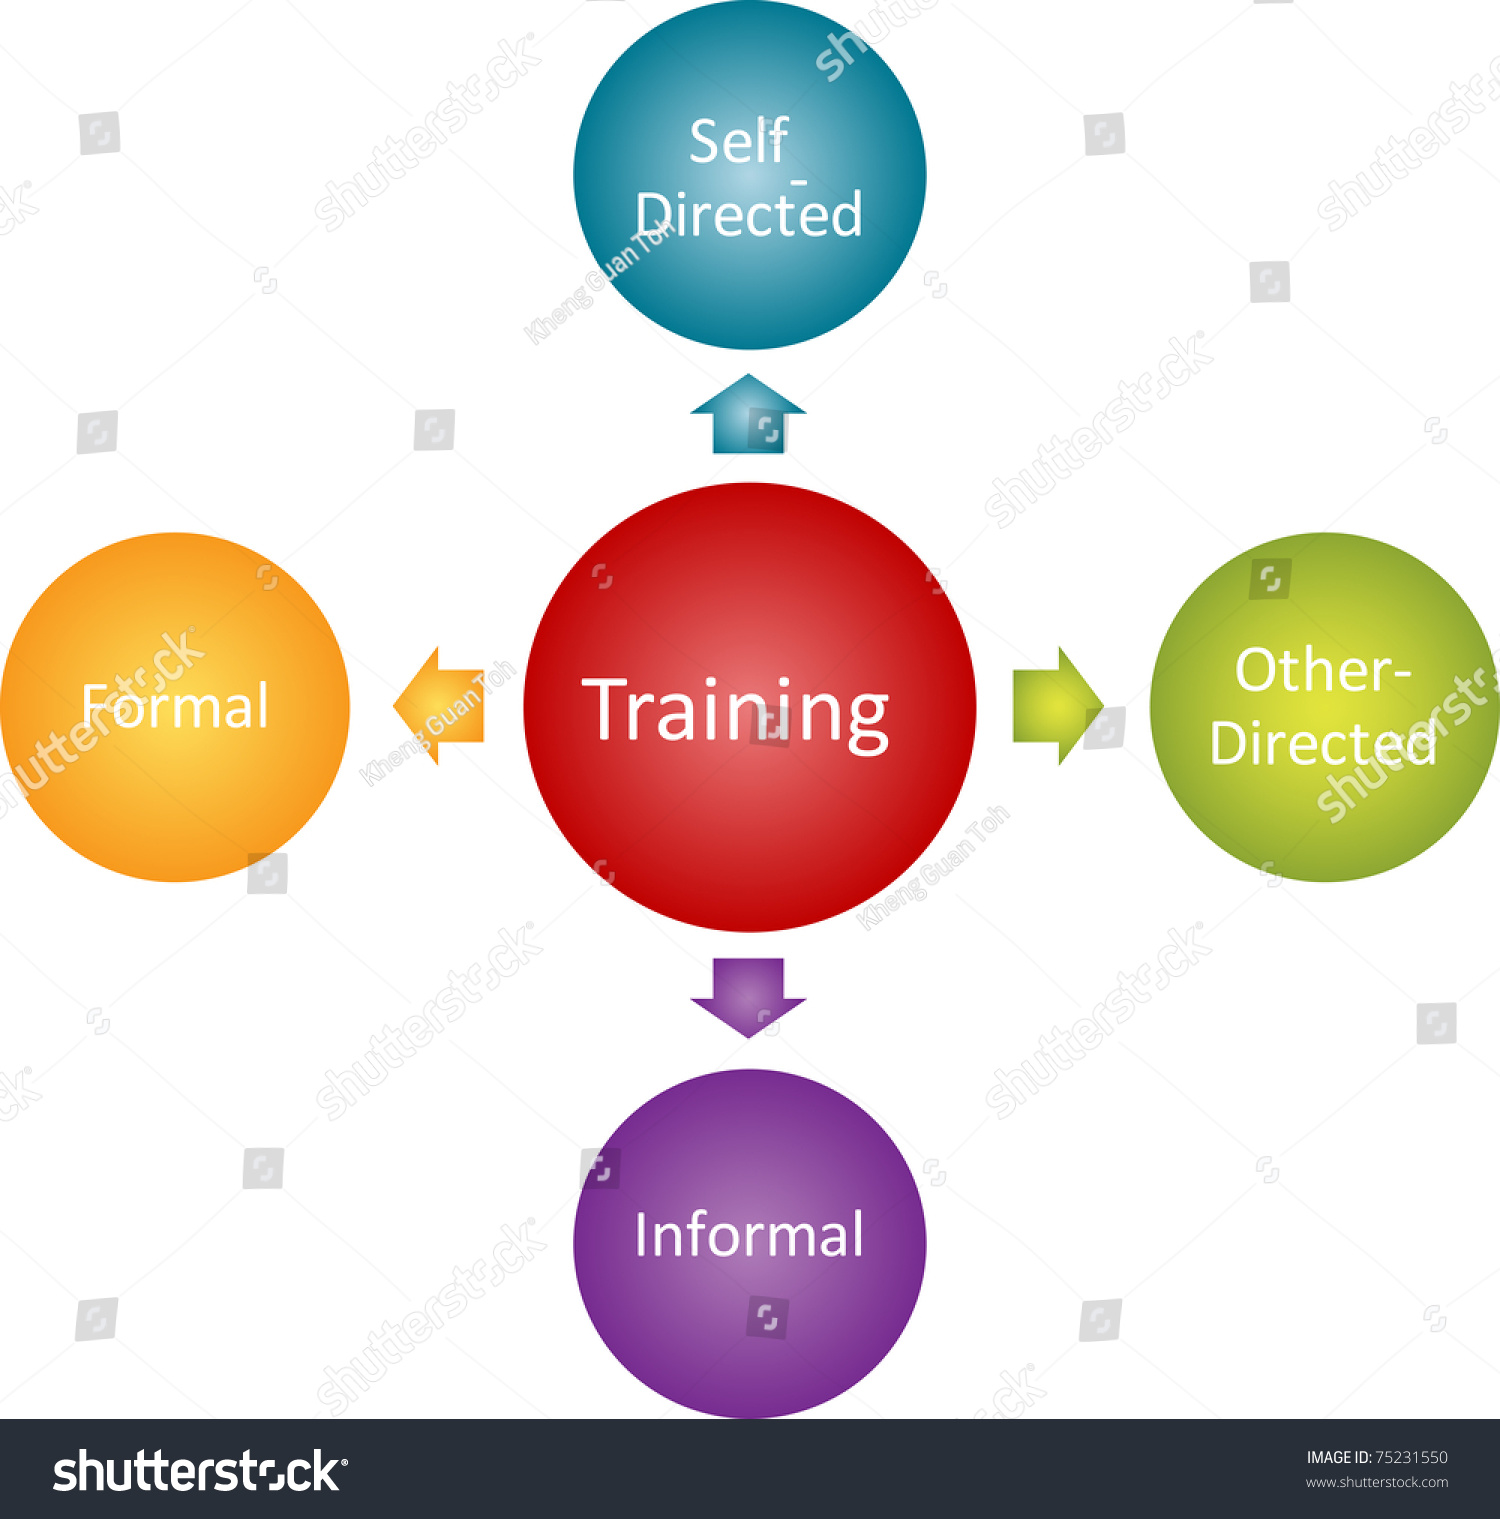 Training types business diagram management strategy stock training types business diagram management strategy concept chart illustration ccuart Images